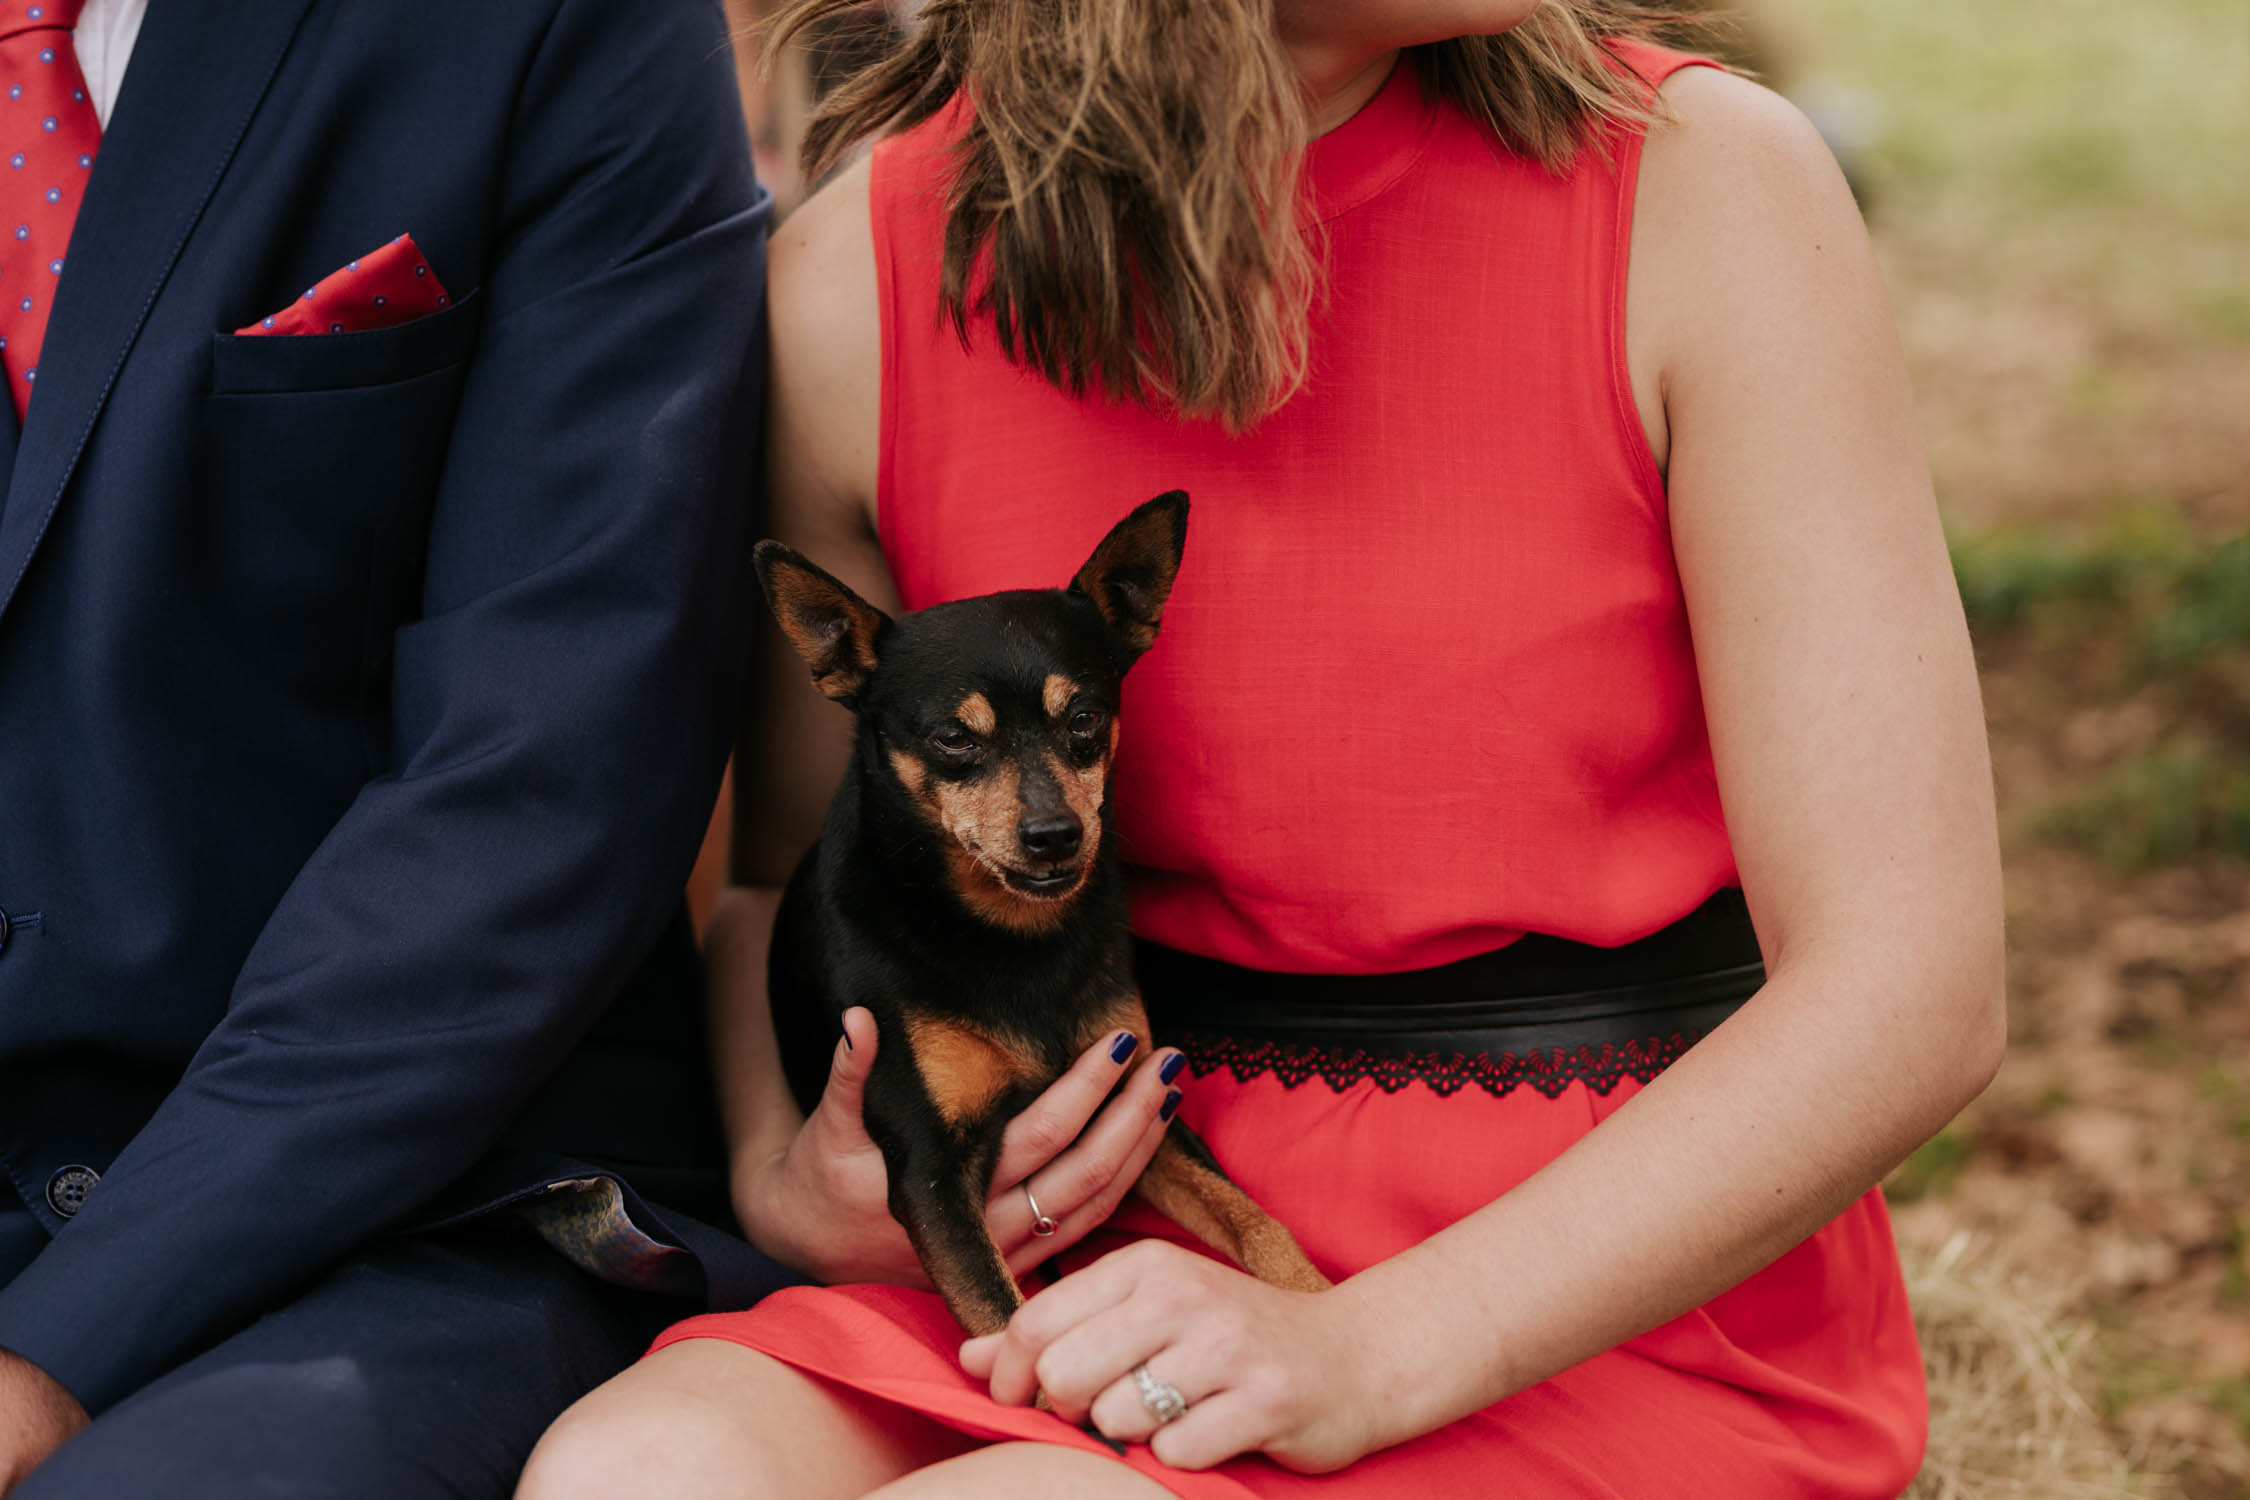 Small black and brown dog sitting girl's lap during wedding ceremony. She is wearing a red dress.